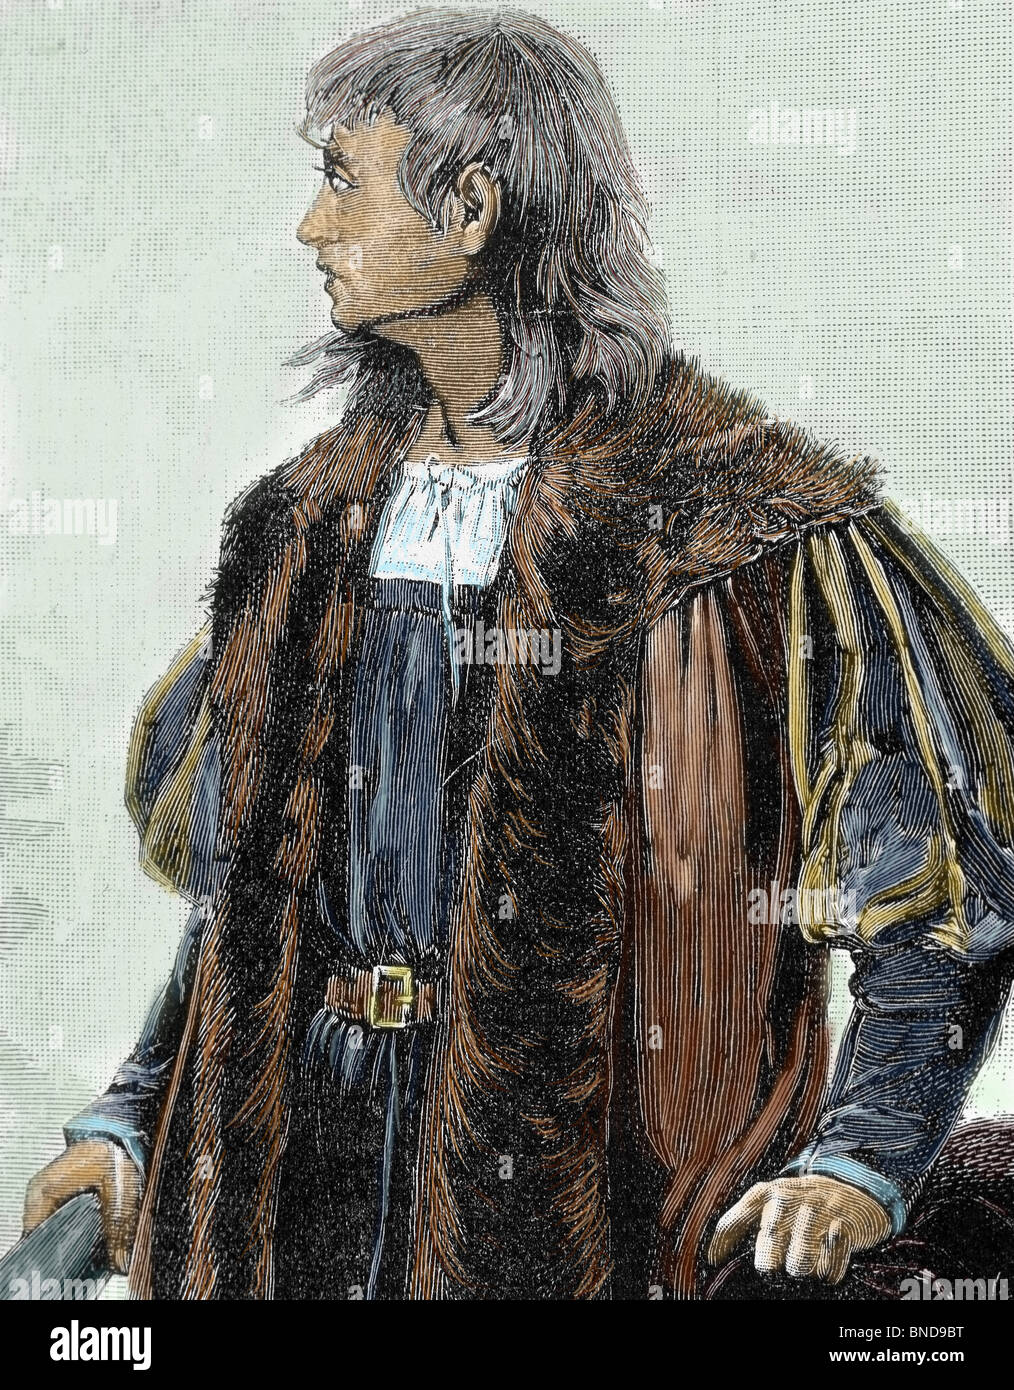 Christopher Columbus (1451 -1506) . Navigator, colonizer, and explorer. Colored engraving. - Stock Image